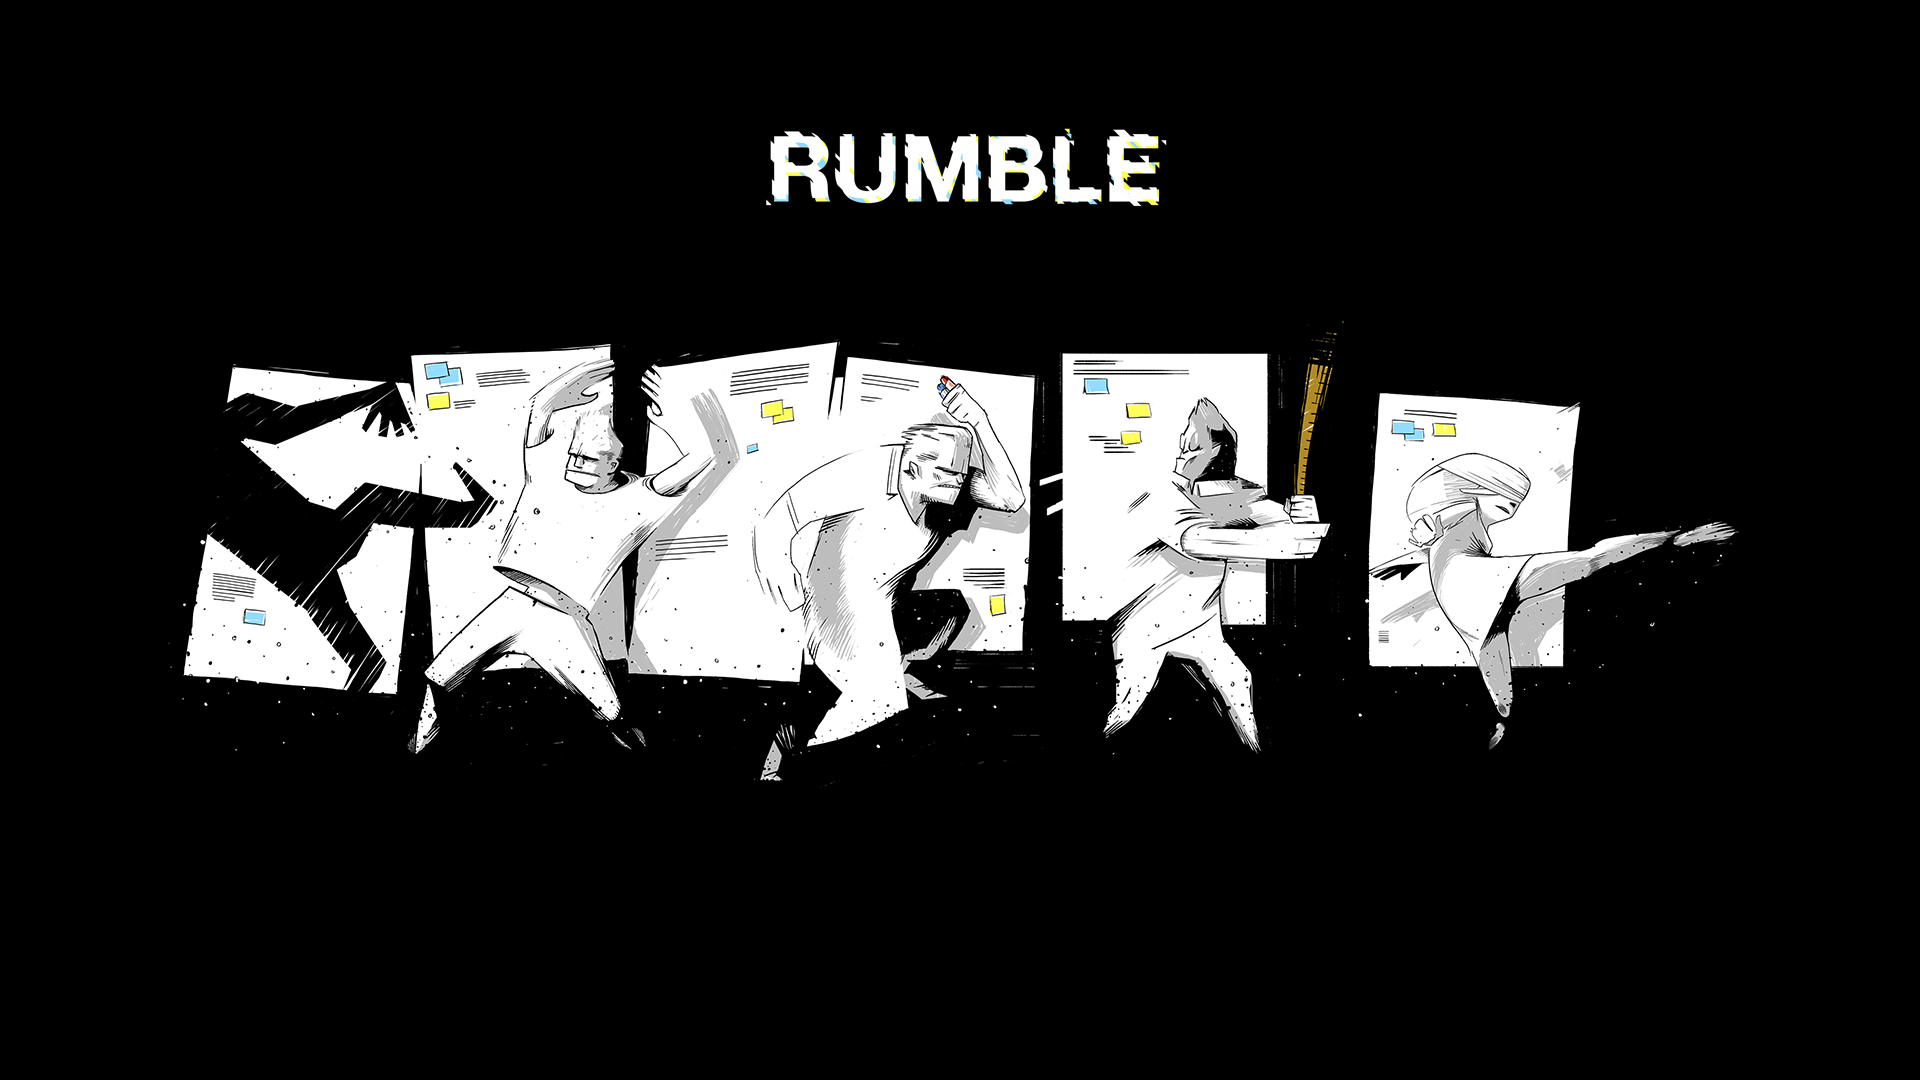 RUMBLE_1920x1080.png